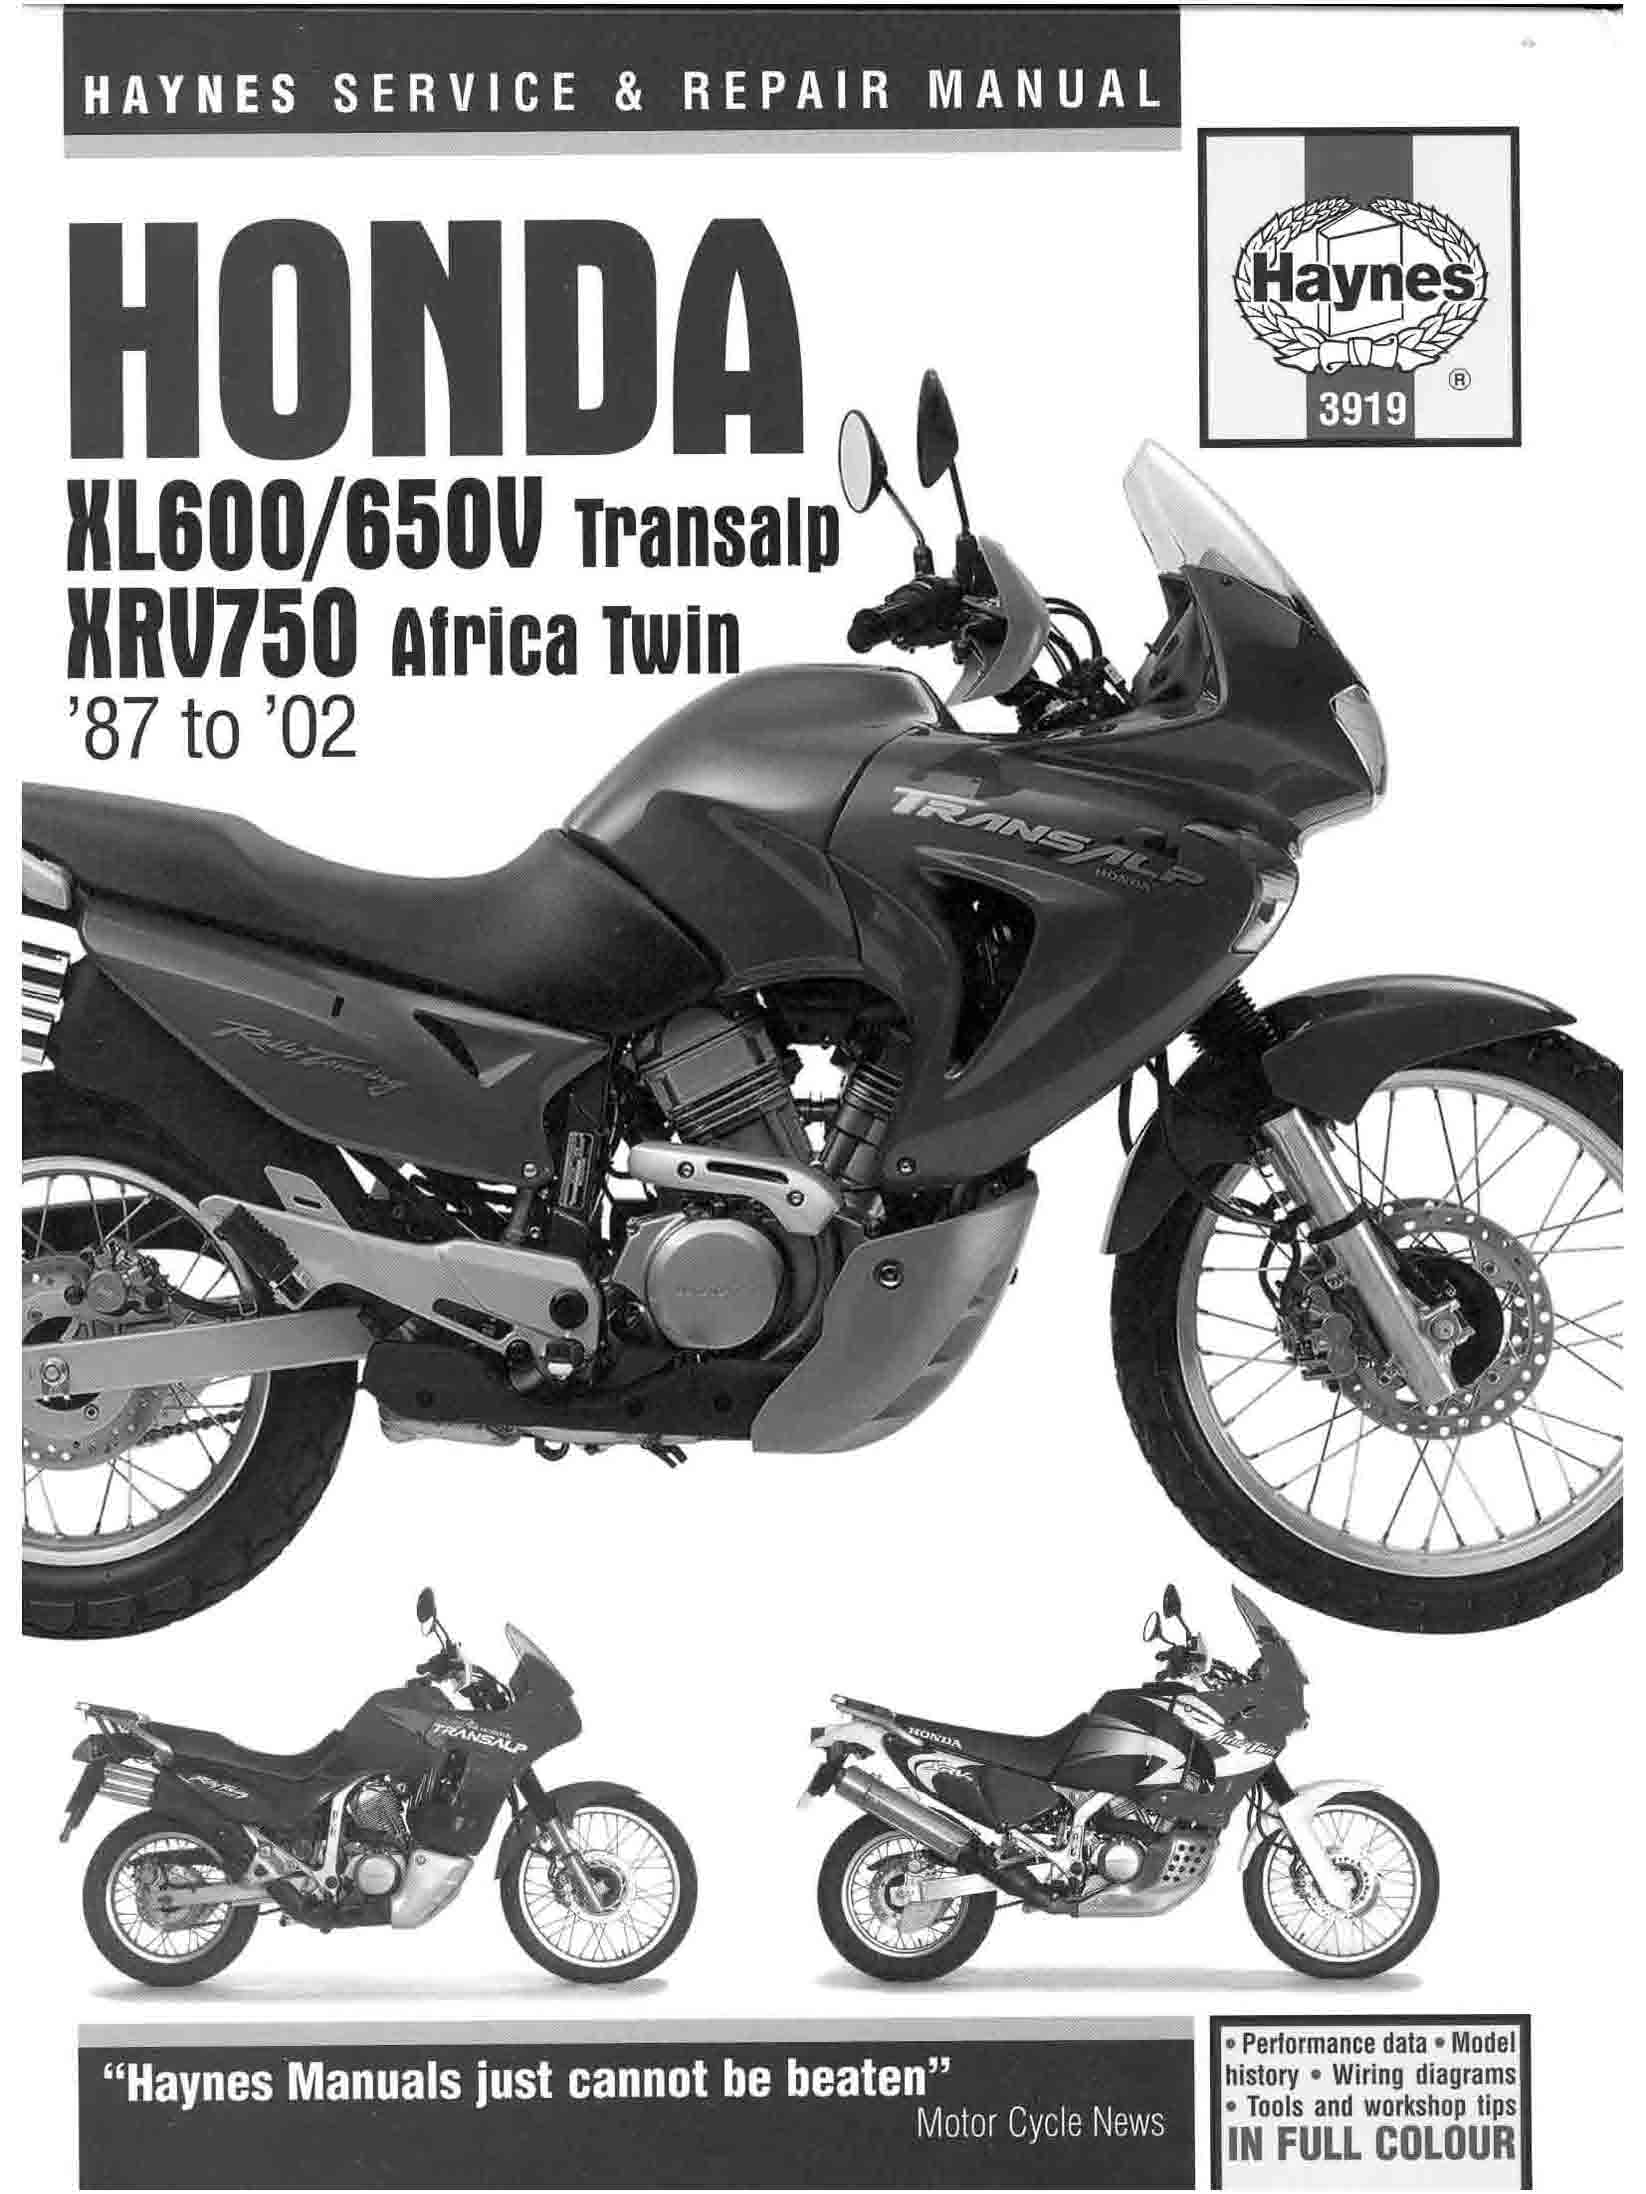 Workshopmanual For Honda Xl600 Transalp 1987 2002 Ss50 Wiring Diagram